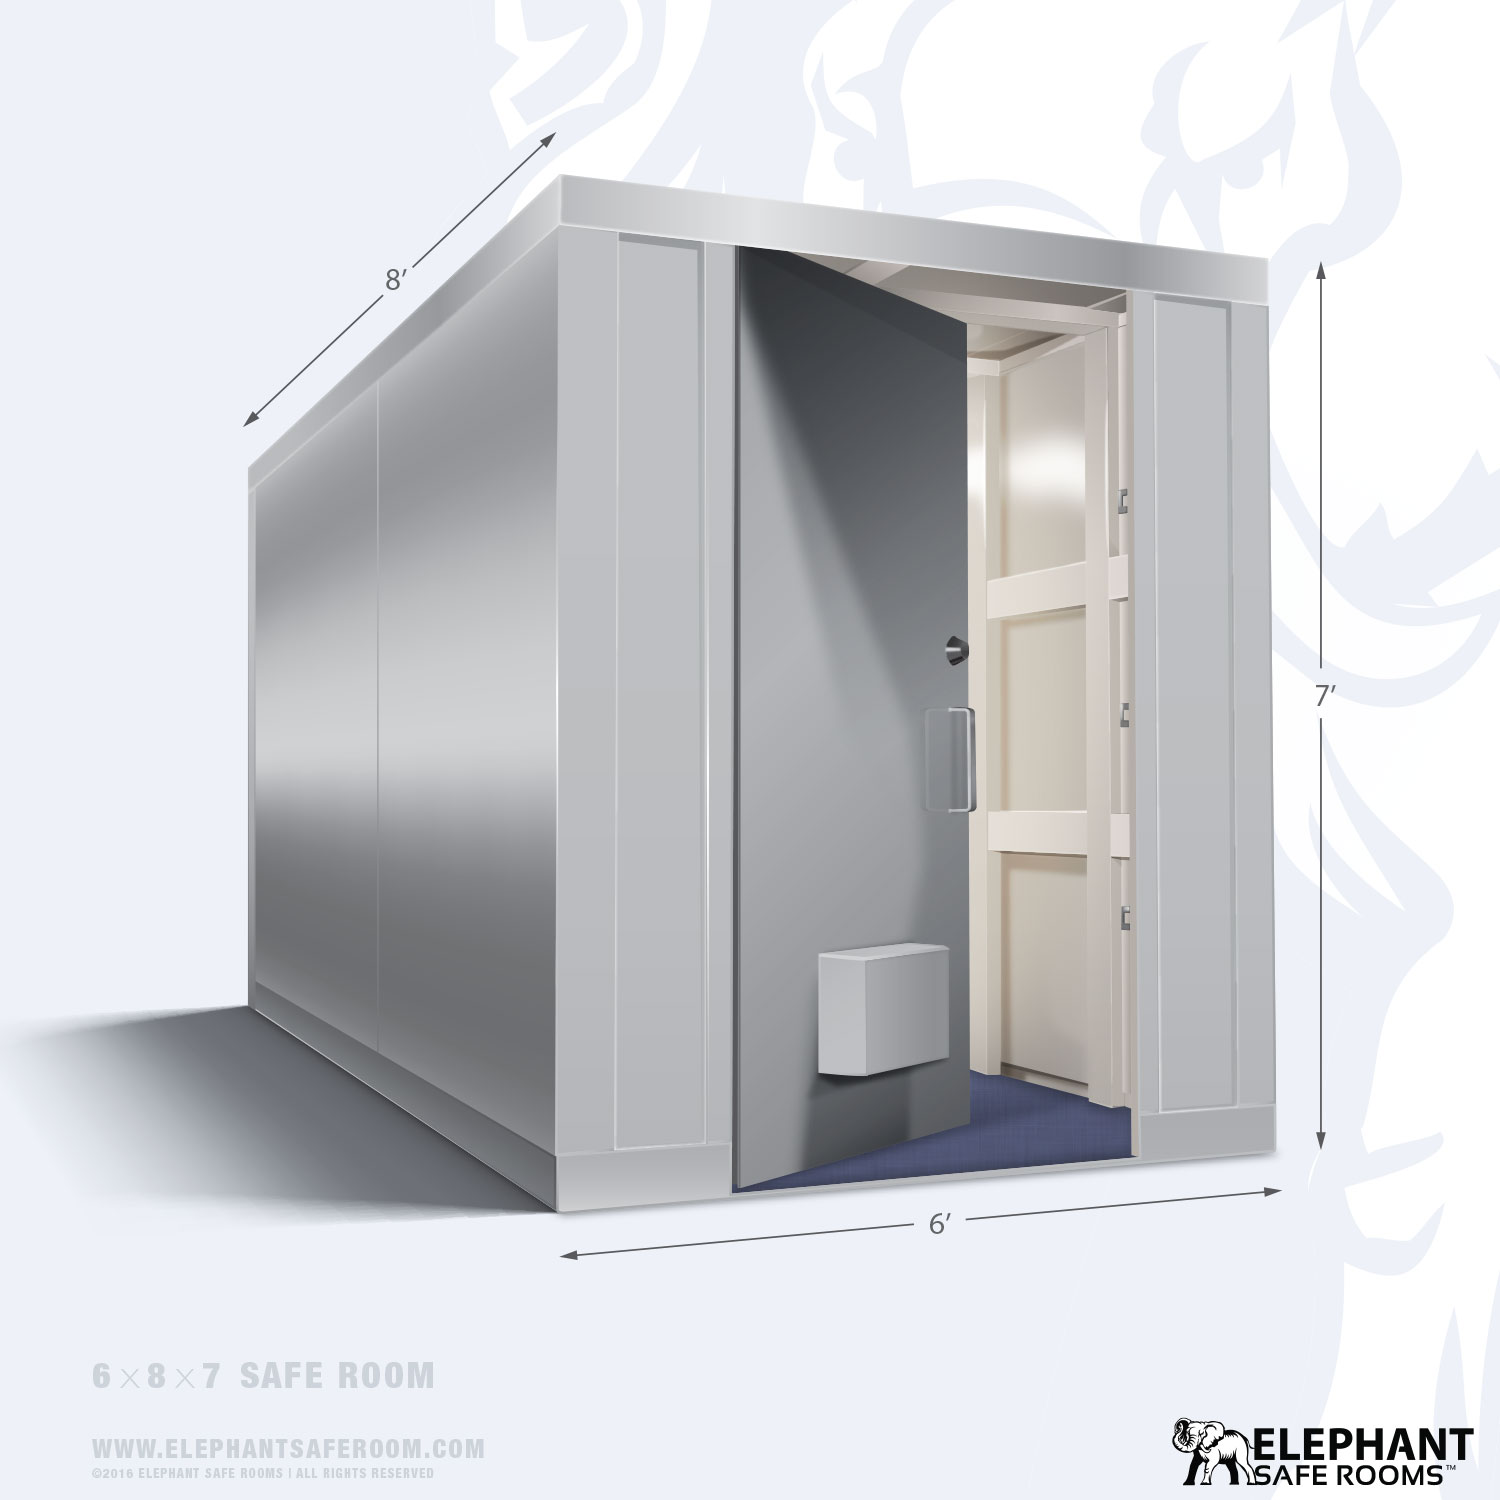 6 39 x 8 39 safe room elephant safe room Safe room